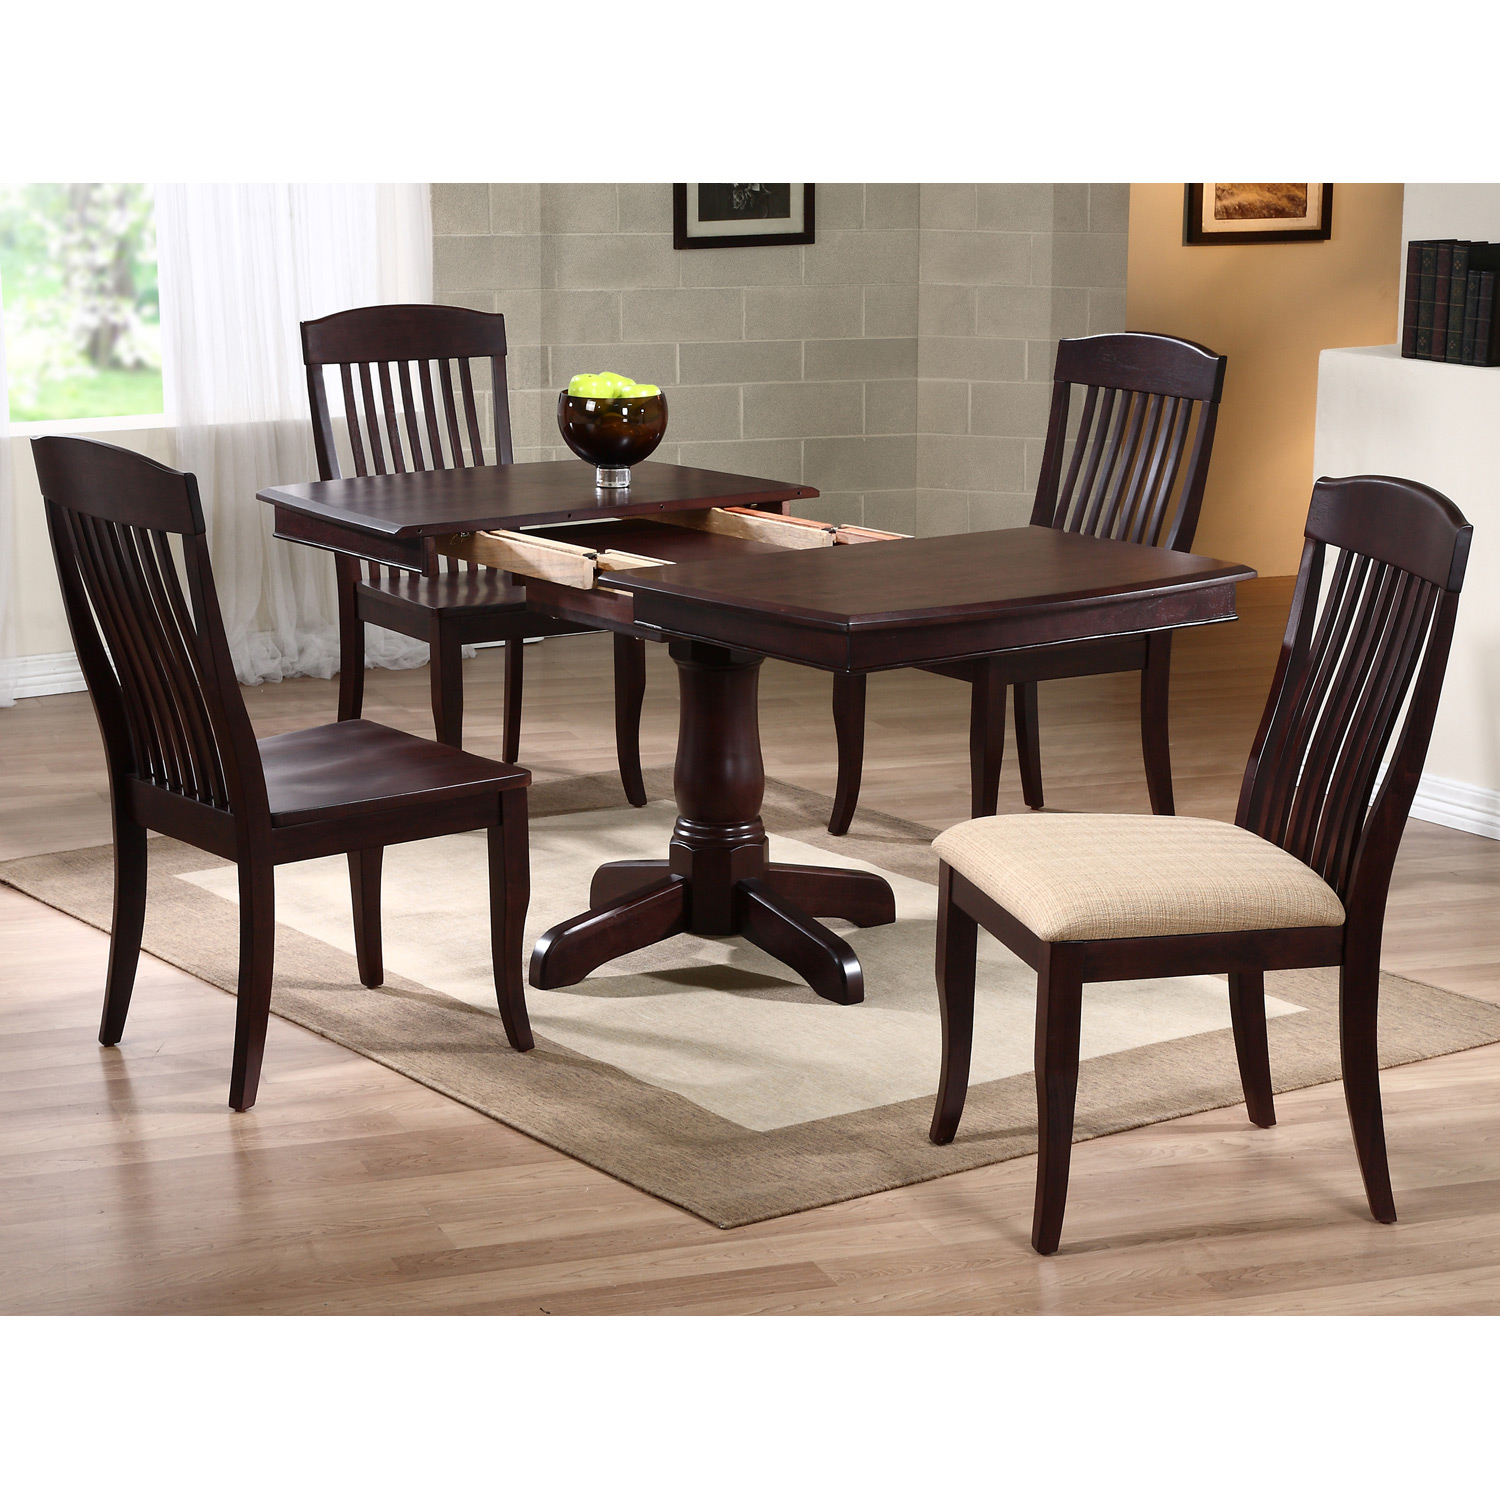 Belga Side Chair - Slat Back, Mocha Finish - ICON-CH58-MA-MA